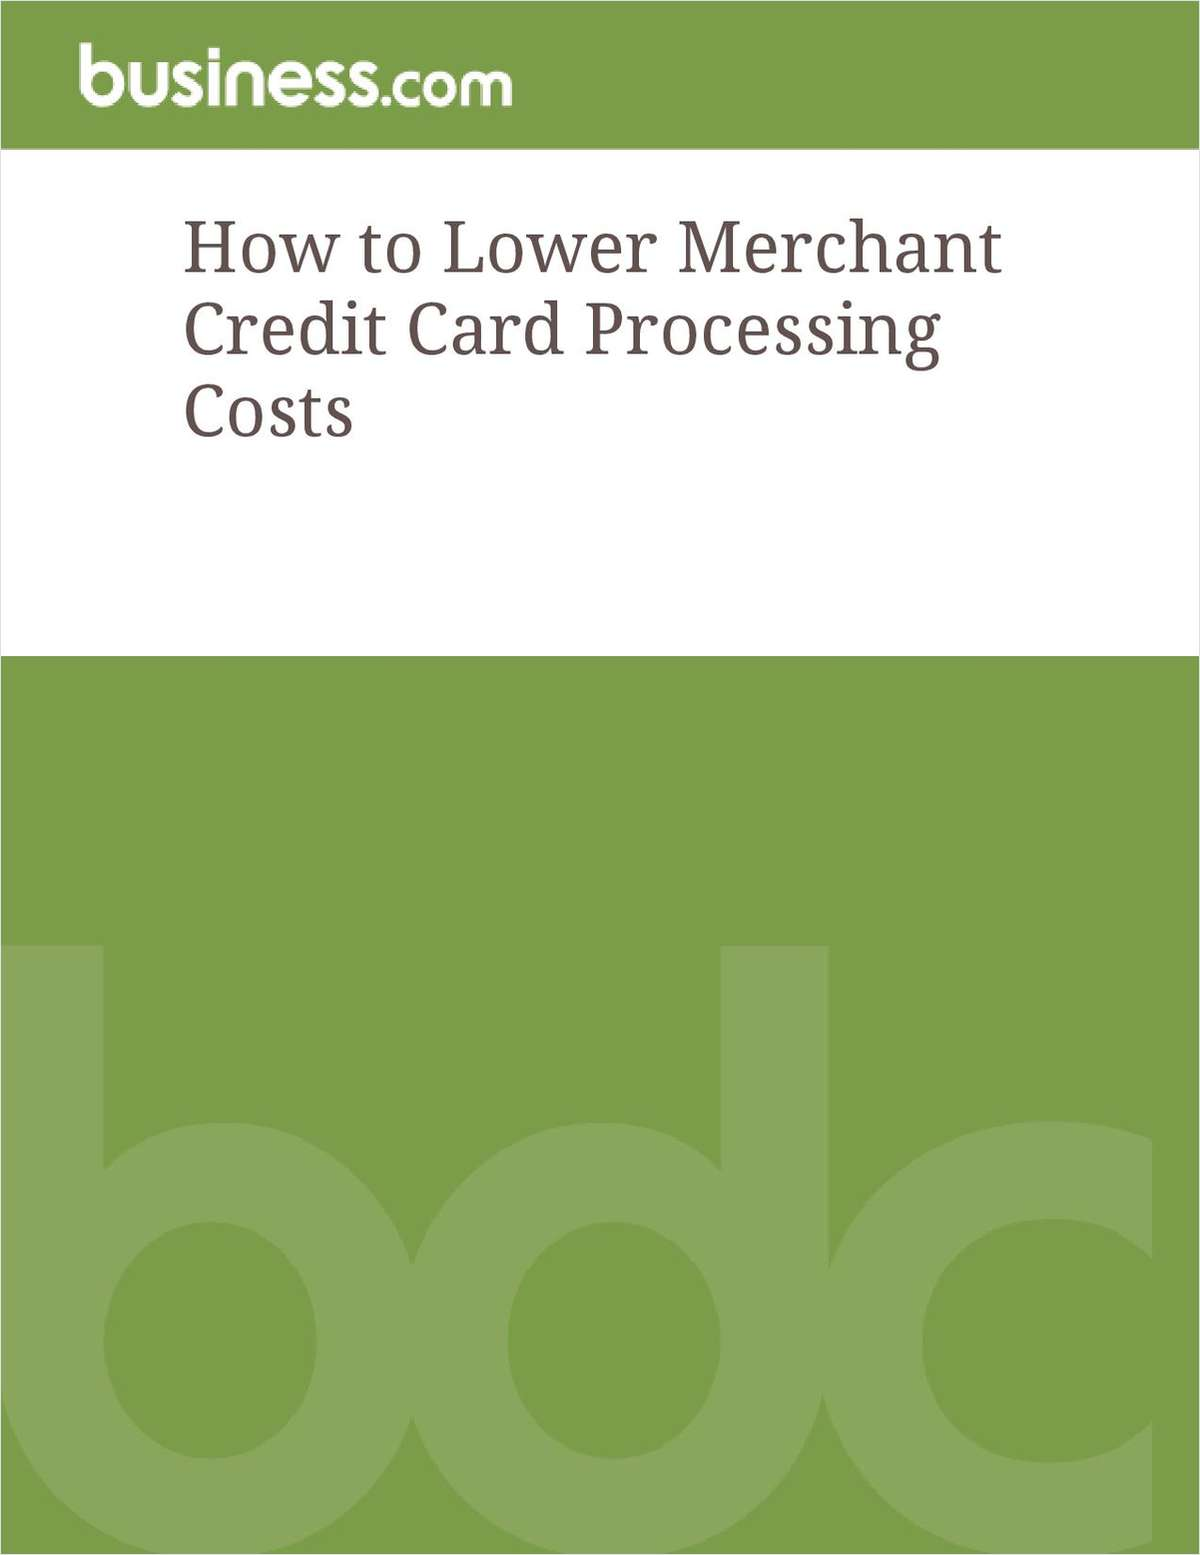 How to Lower Merchant Credit Card Processing Costs